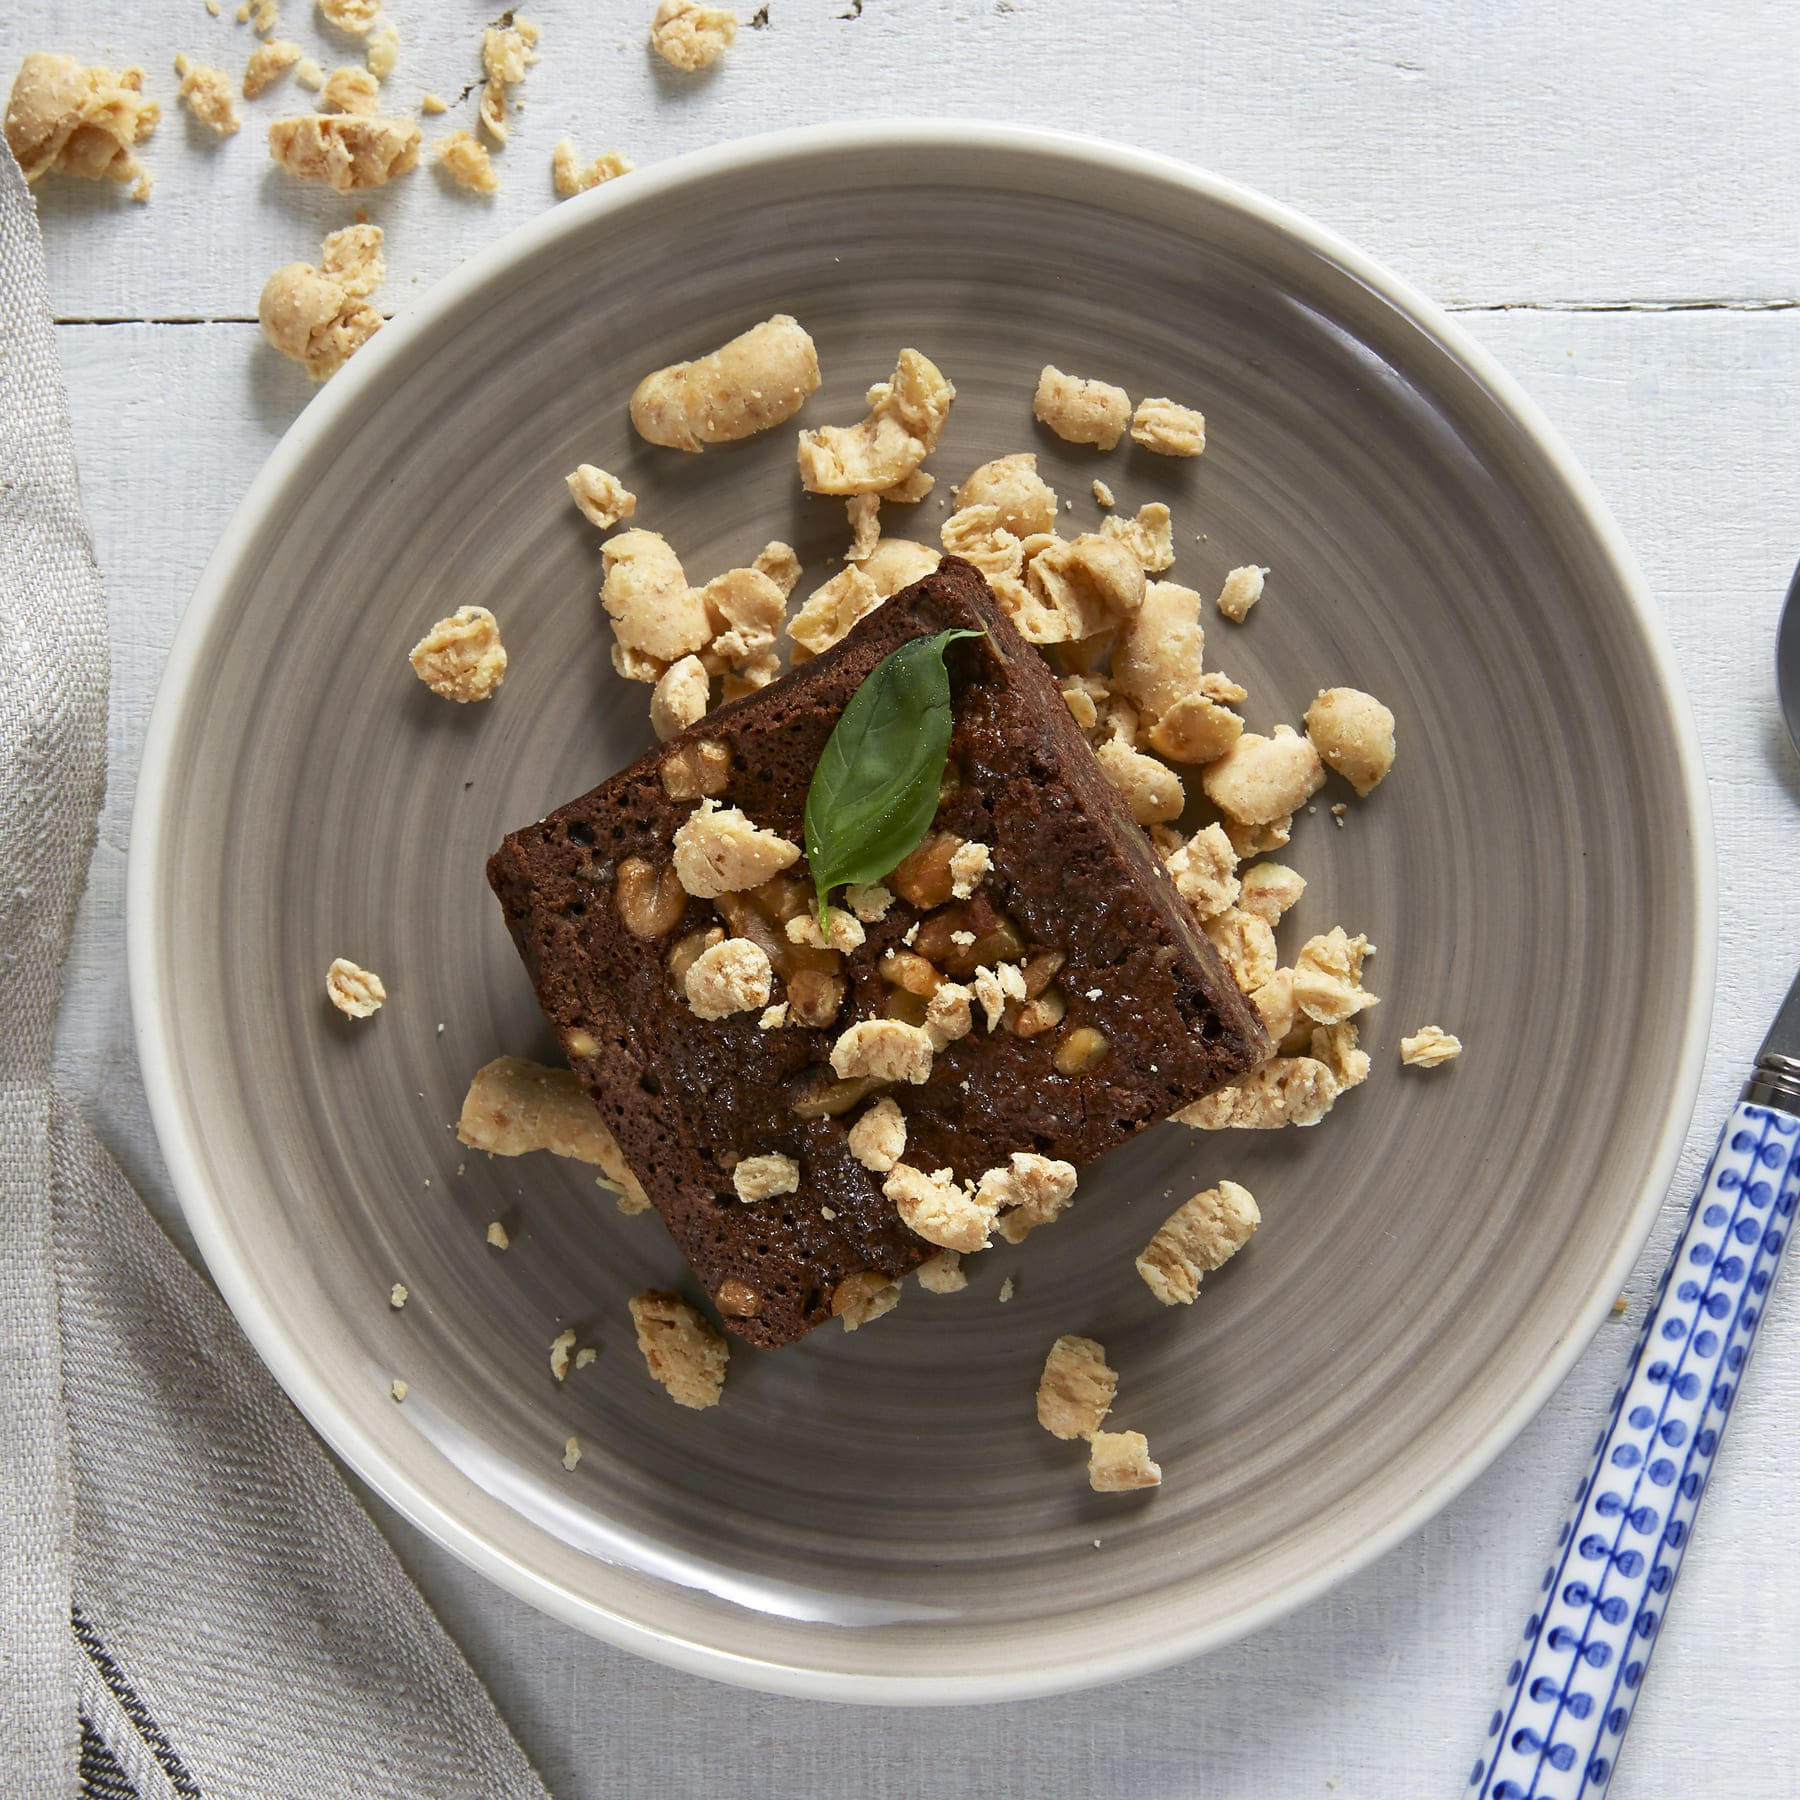 Brownie con crumble de chocolate blanco